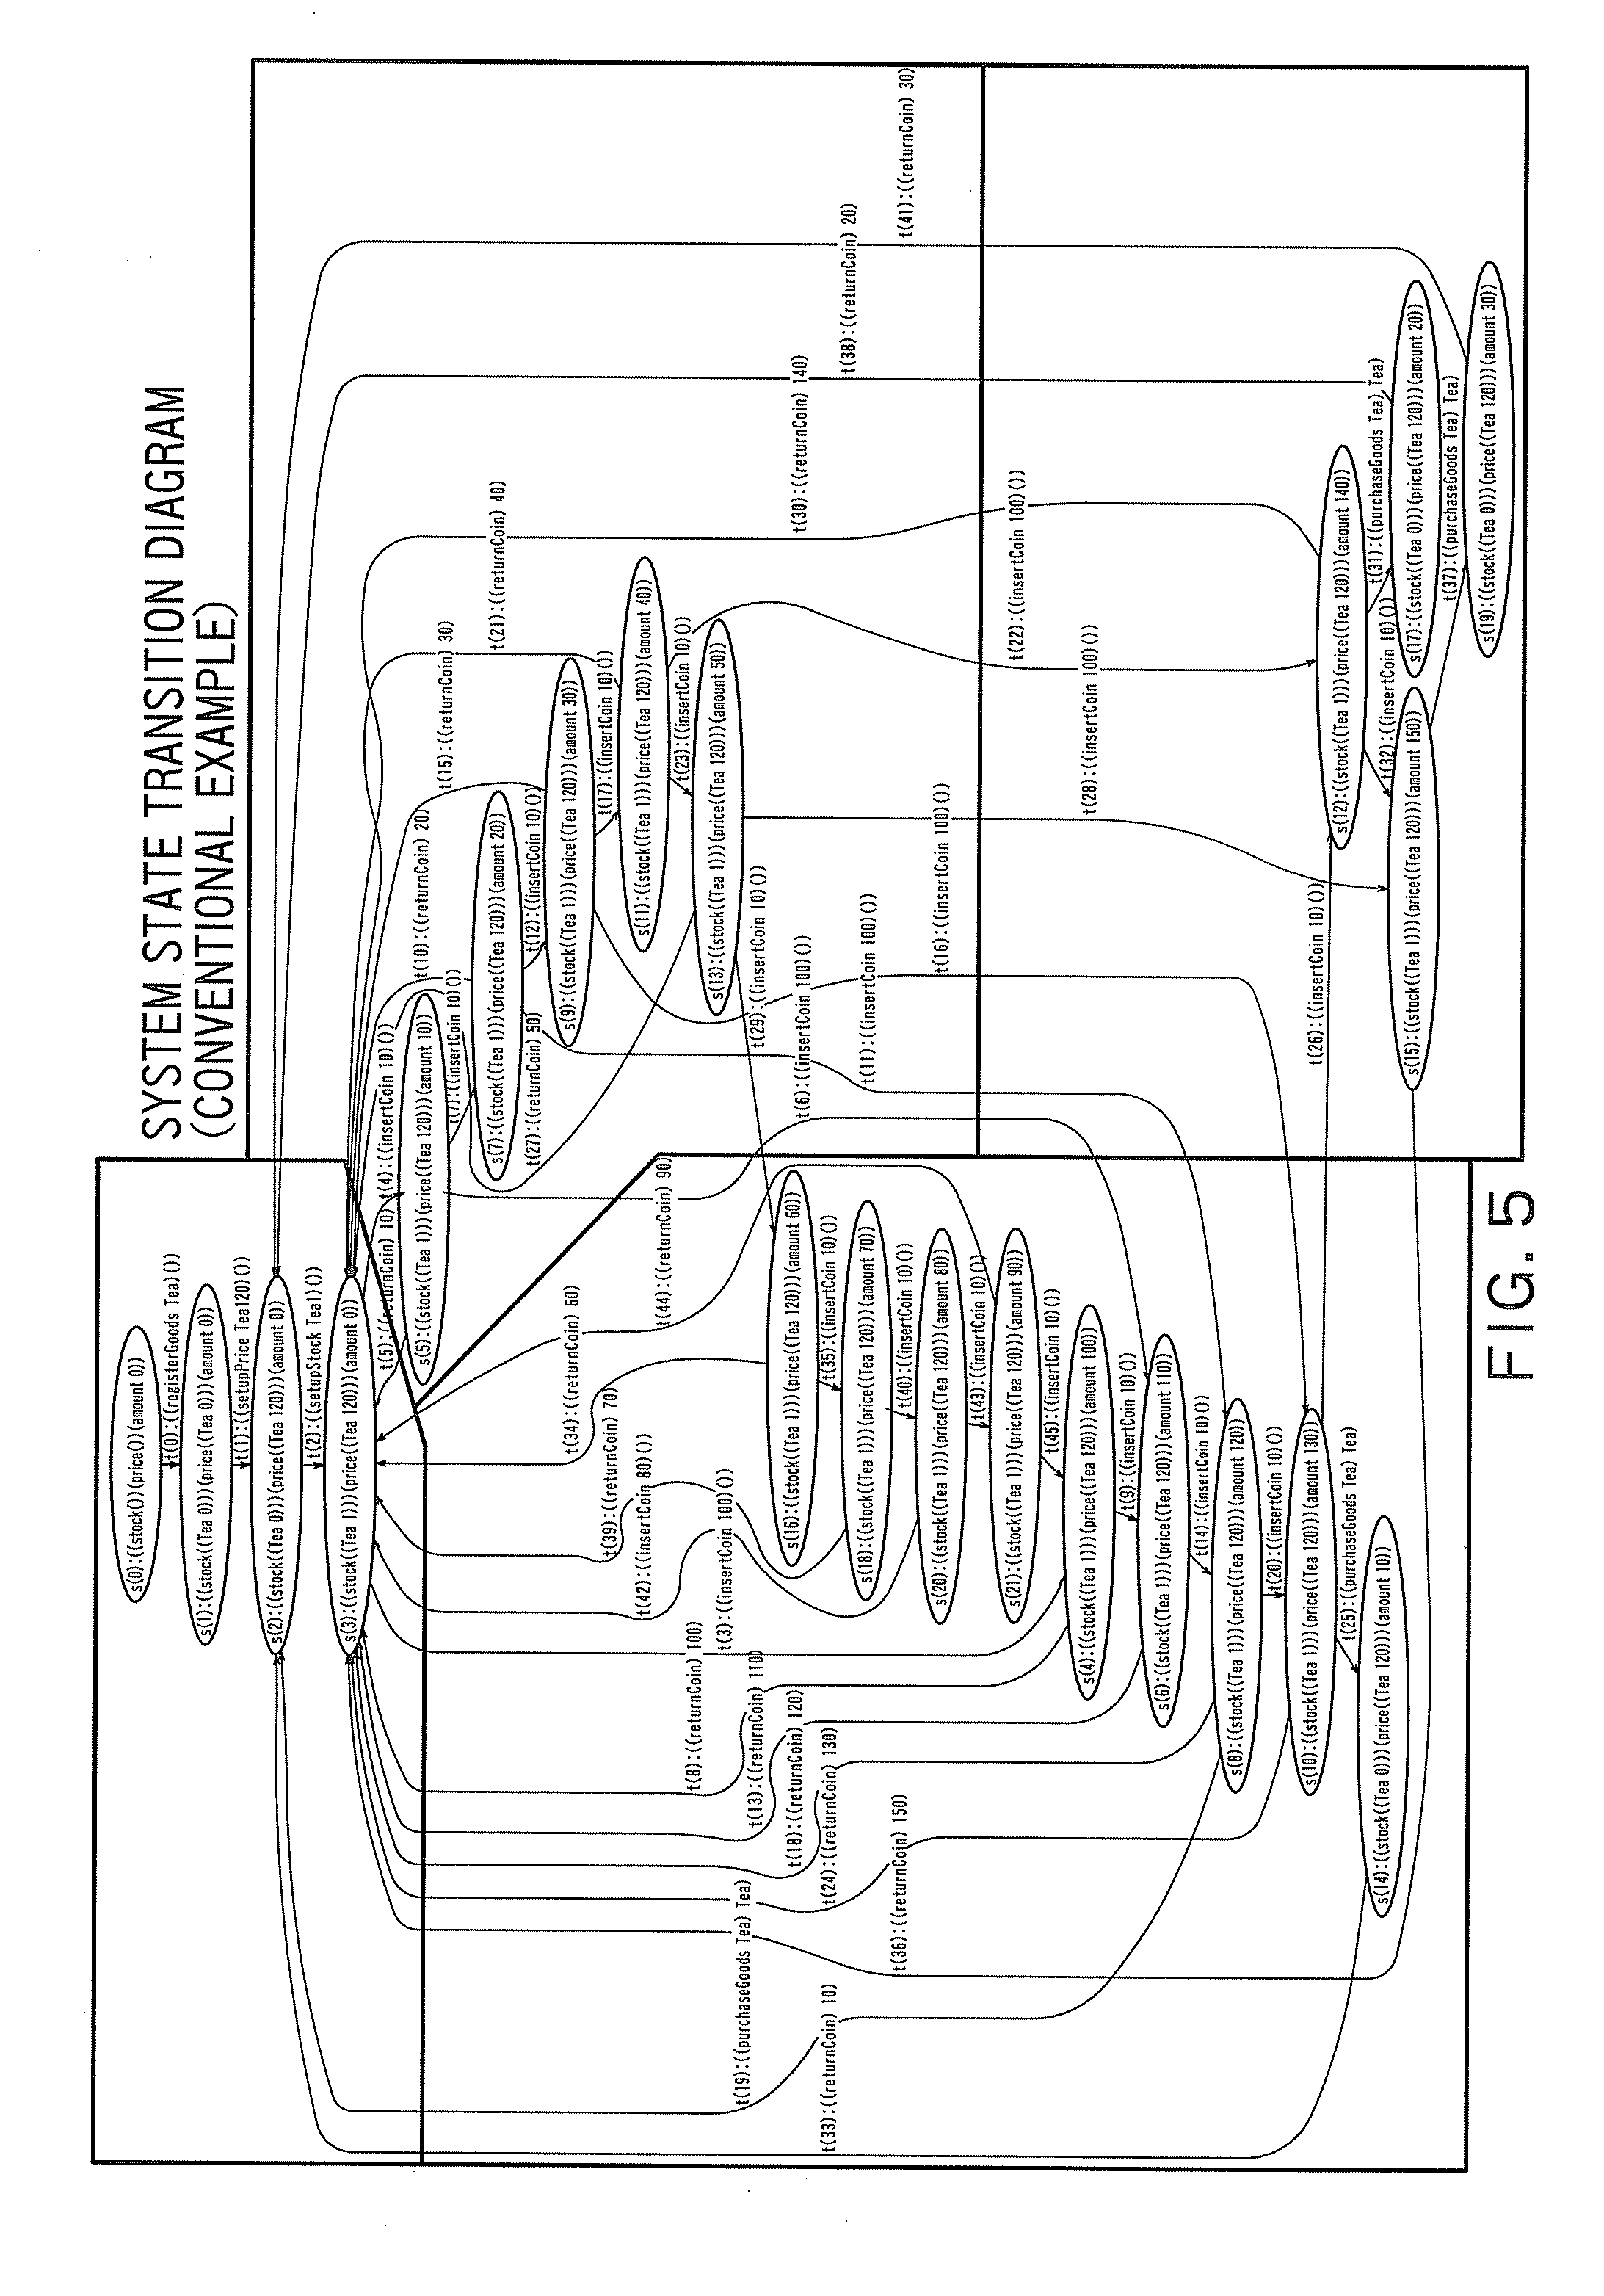 state transition testing example diagram automotive wiring patent us20100235685 device and method for generating